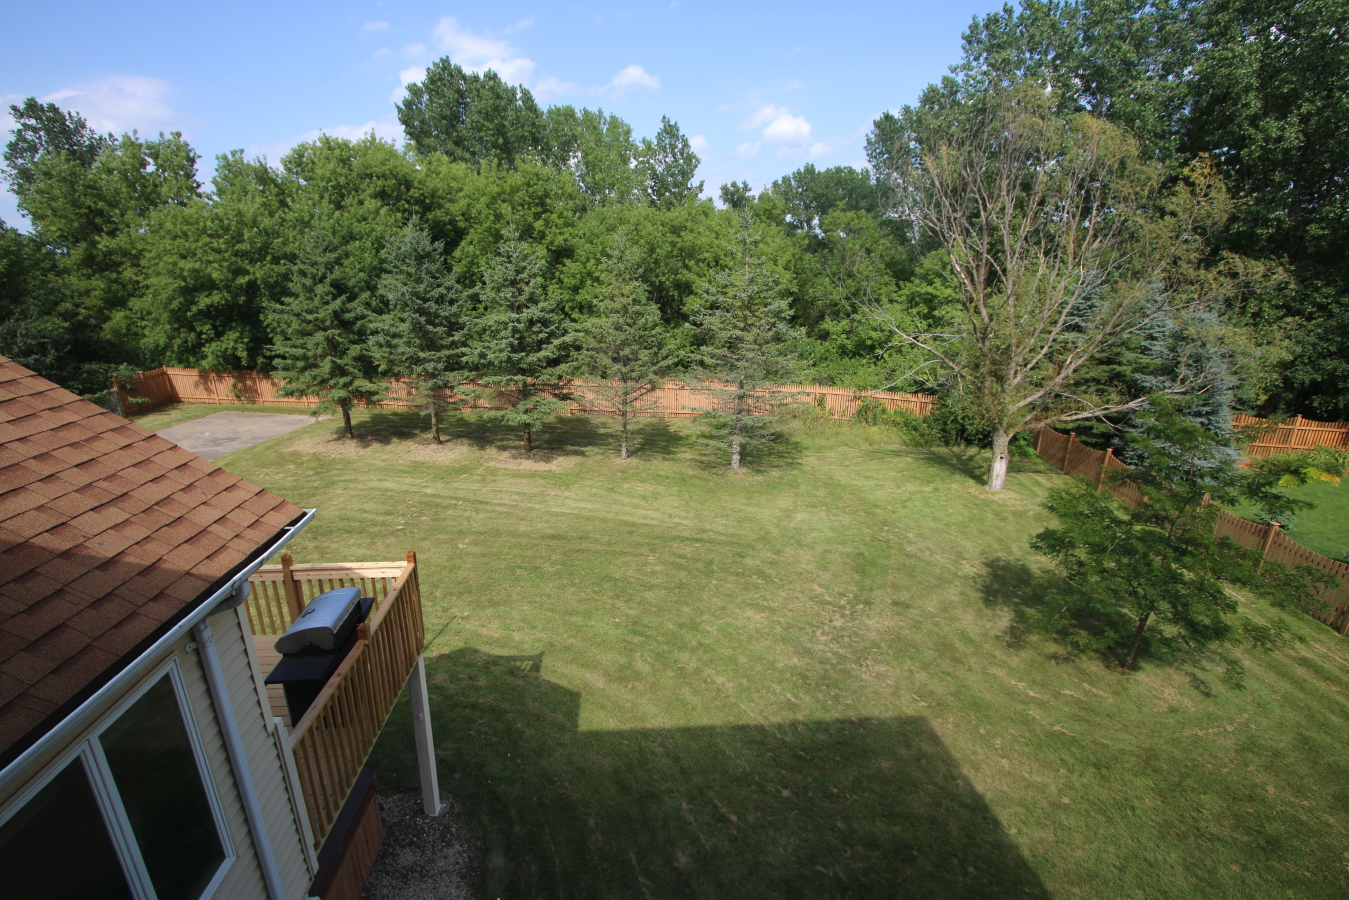 25 home for sale 1775 johnson drive stillwater mn 55082 backyard twin cities home search